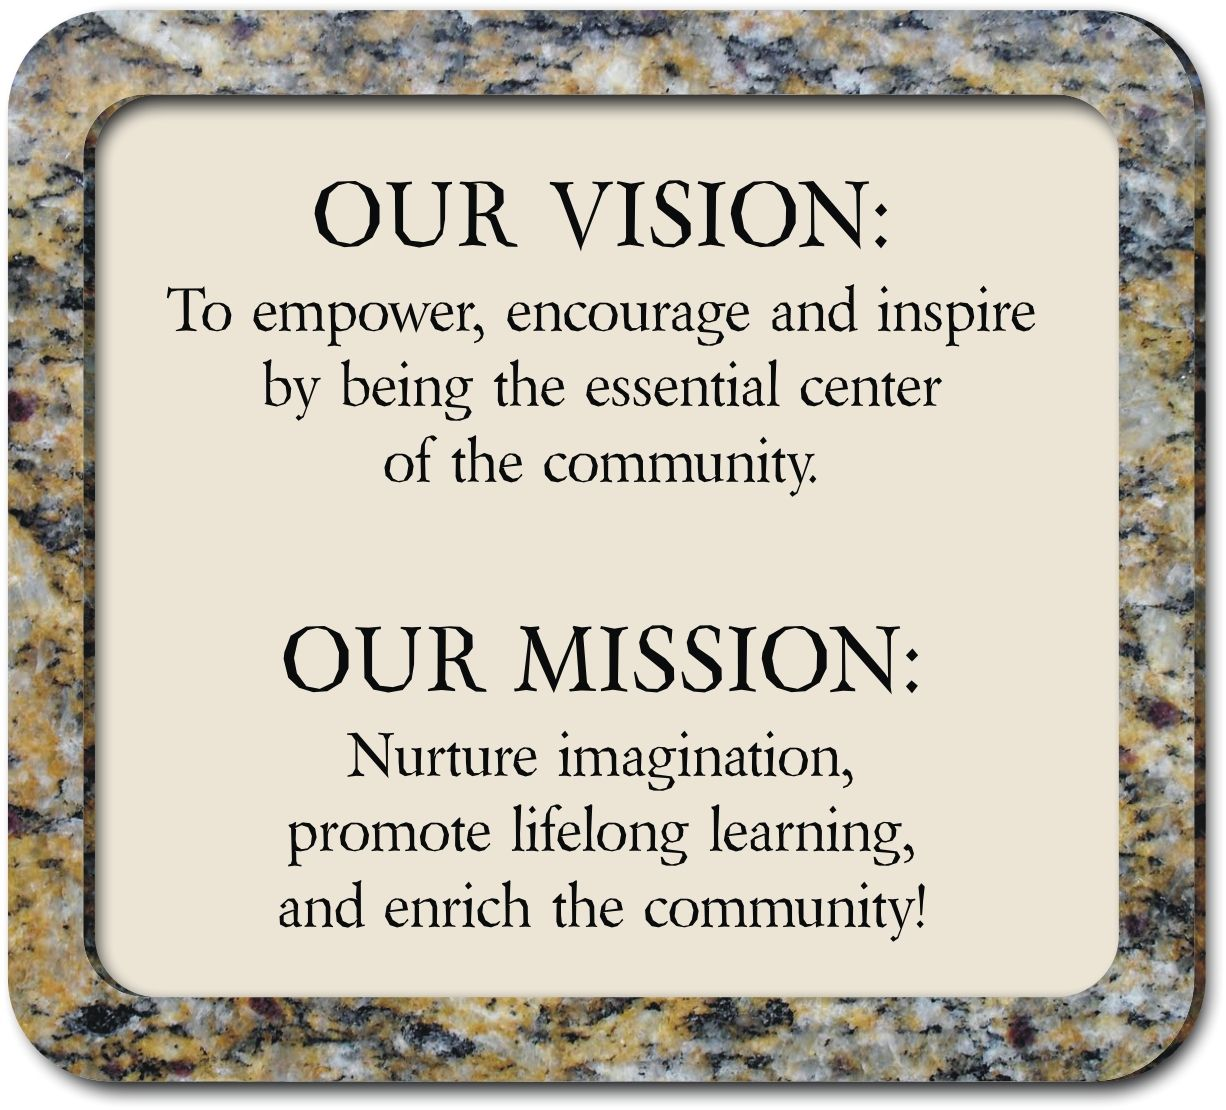 manatee county public library system our vision